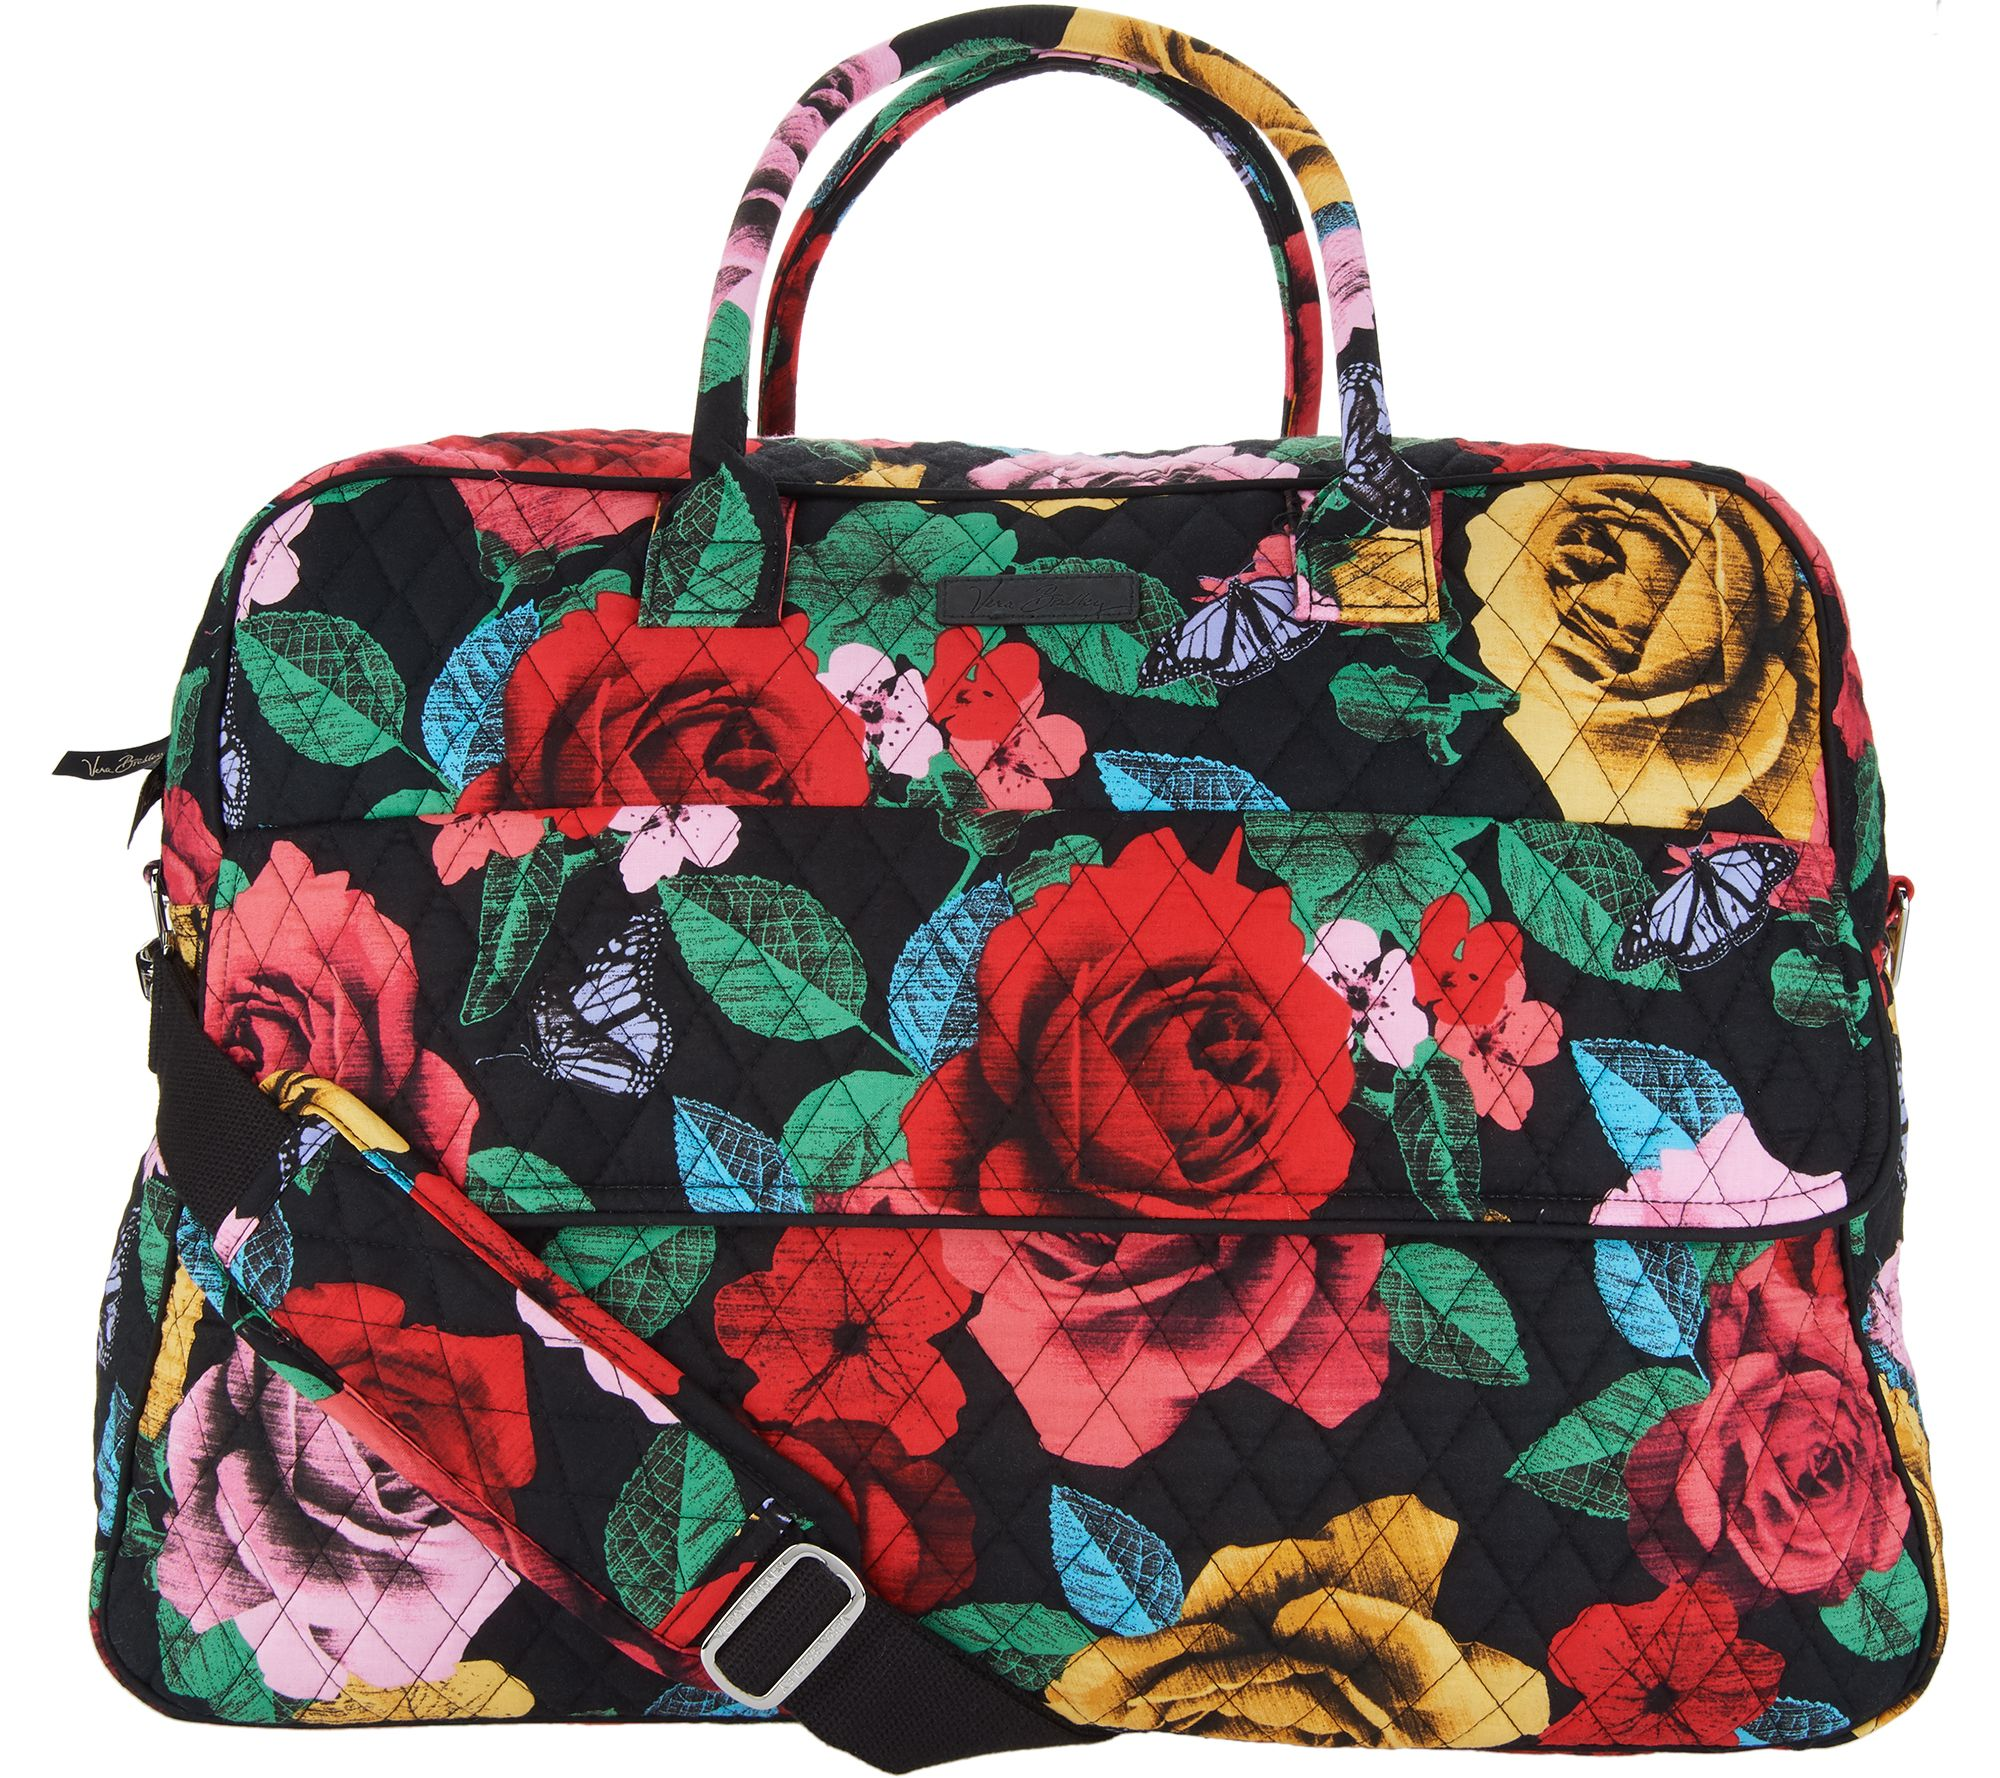 f55f95161558 Vera Bradley Signature Print Grand Traveler Travel Bag - Page 1 — QVC.com